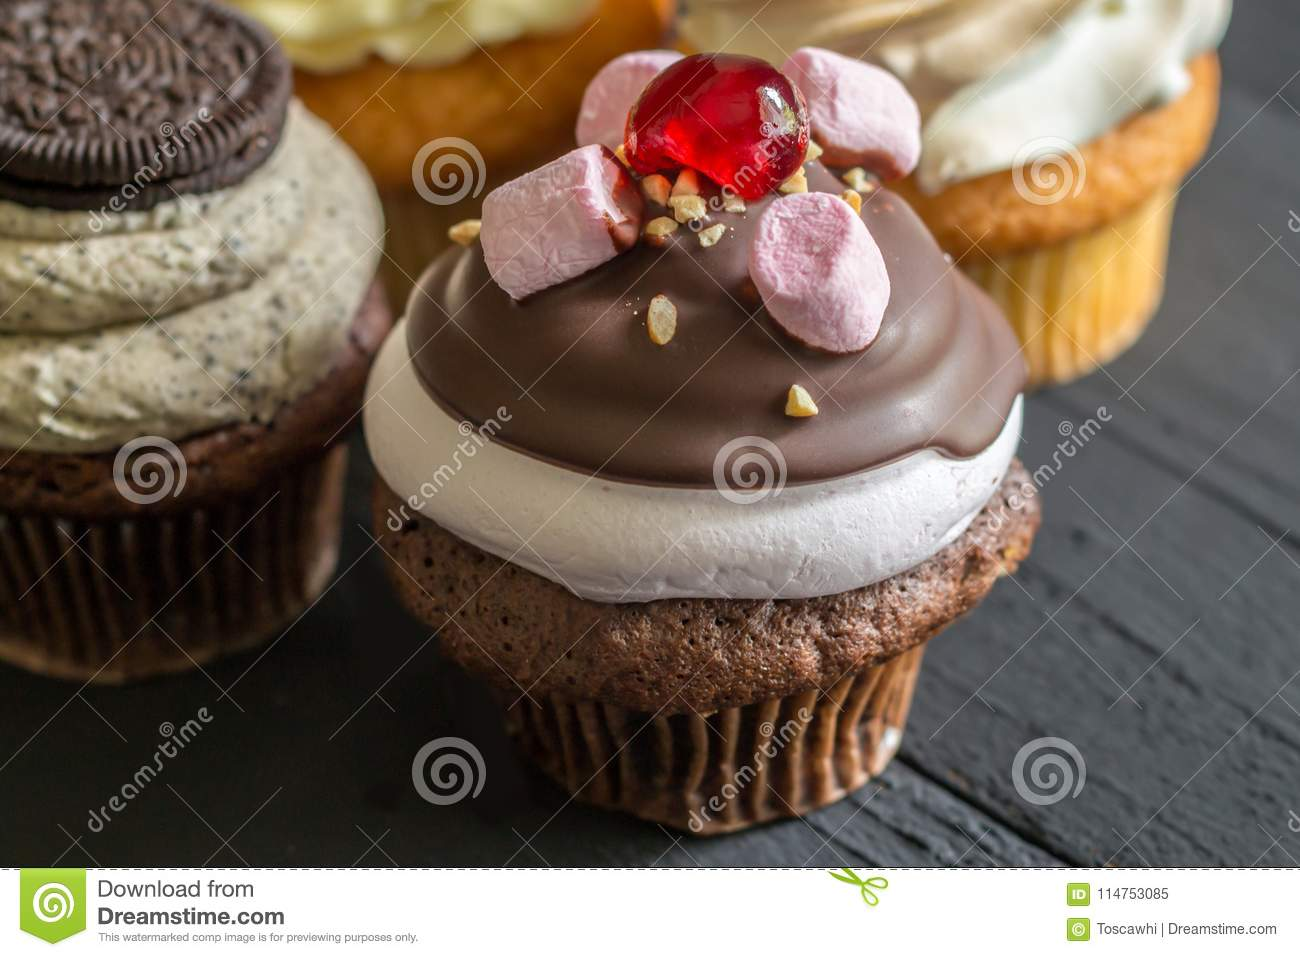 Chocolate And Marshmallow Decorated Cup Cake With Cherry On Top Cupcakes In Background Rustic Black Tablen